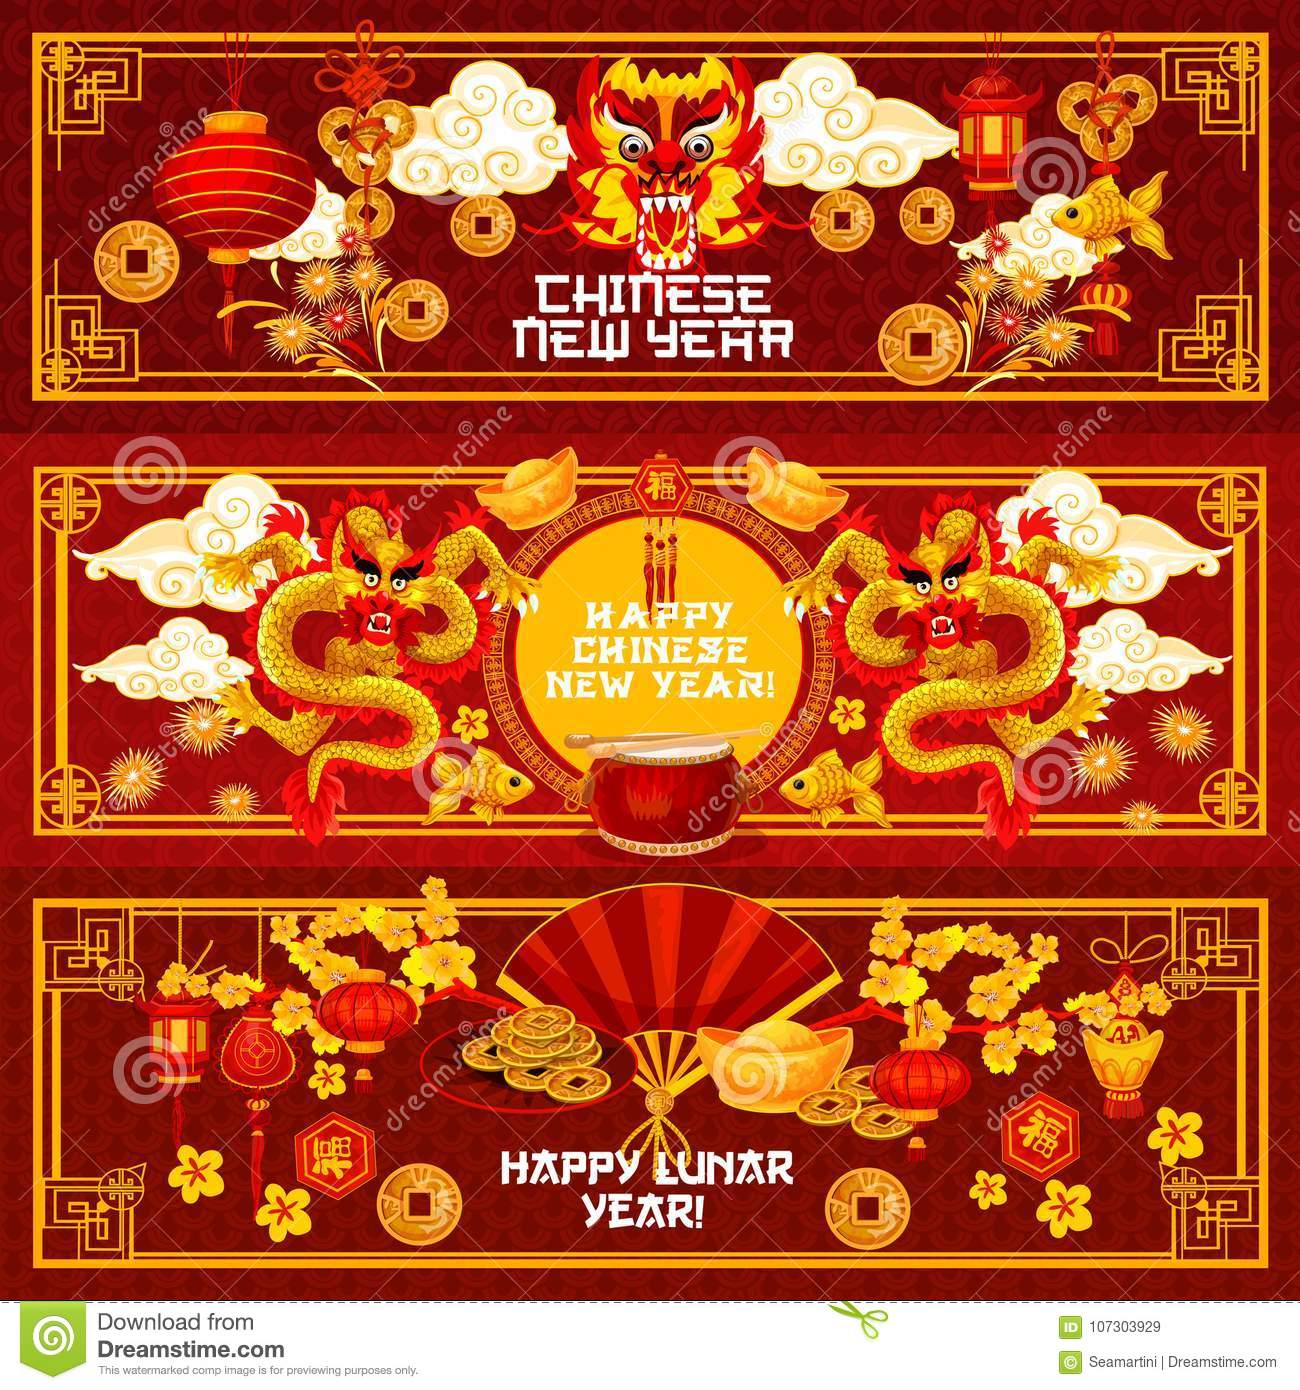 Chinese New Year Ornaments Vector Greeting Banners Stock Vector